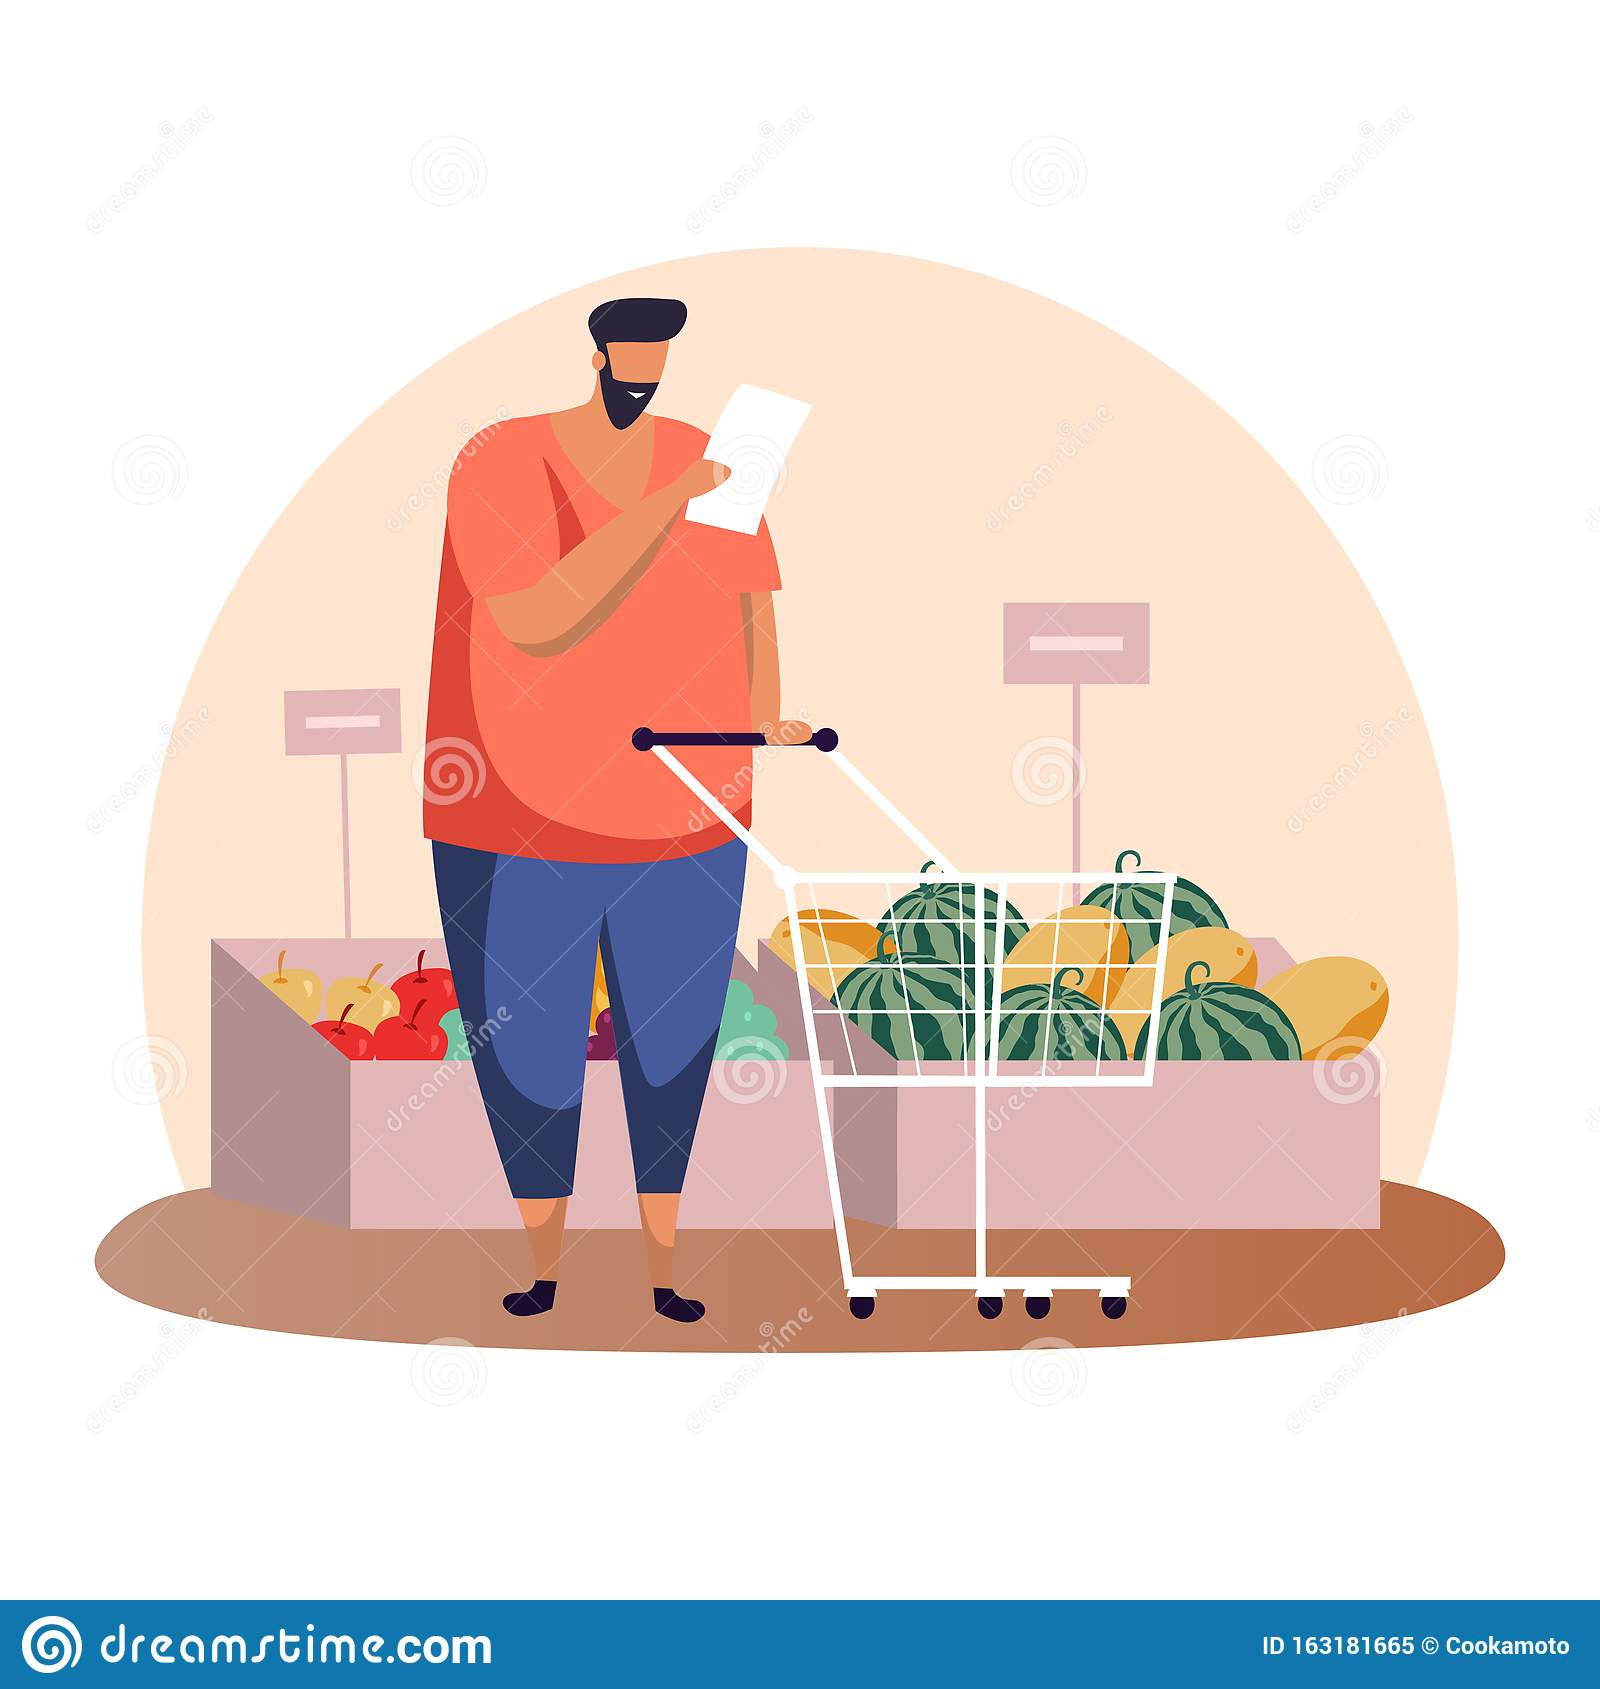 Cartoon Man With Shopping List And Cart Or Trolley Stock Vector Illustration Of Apple Holding 163181665